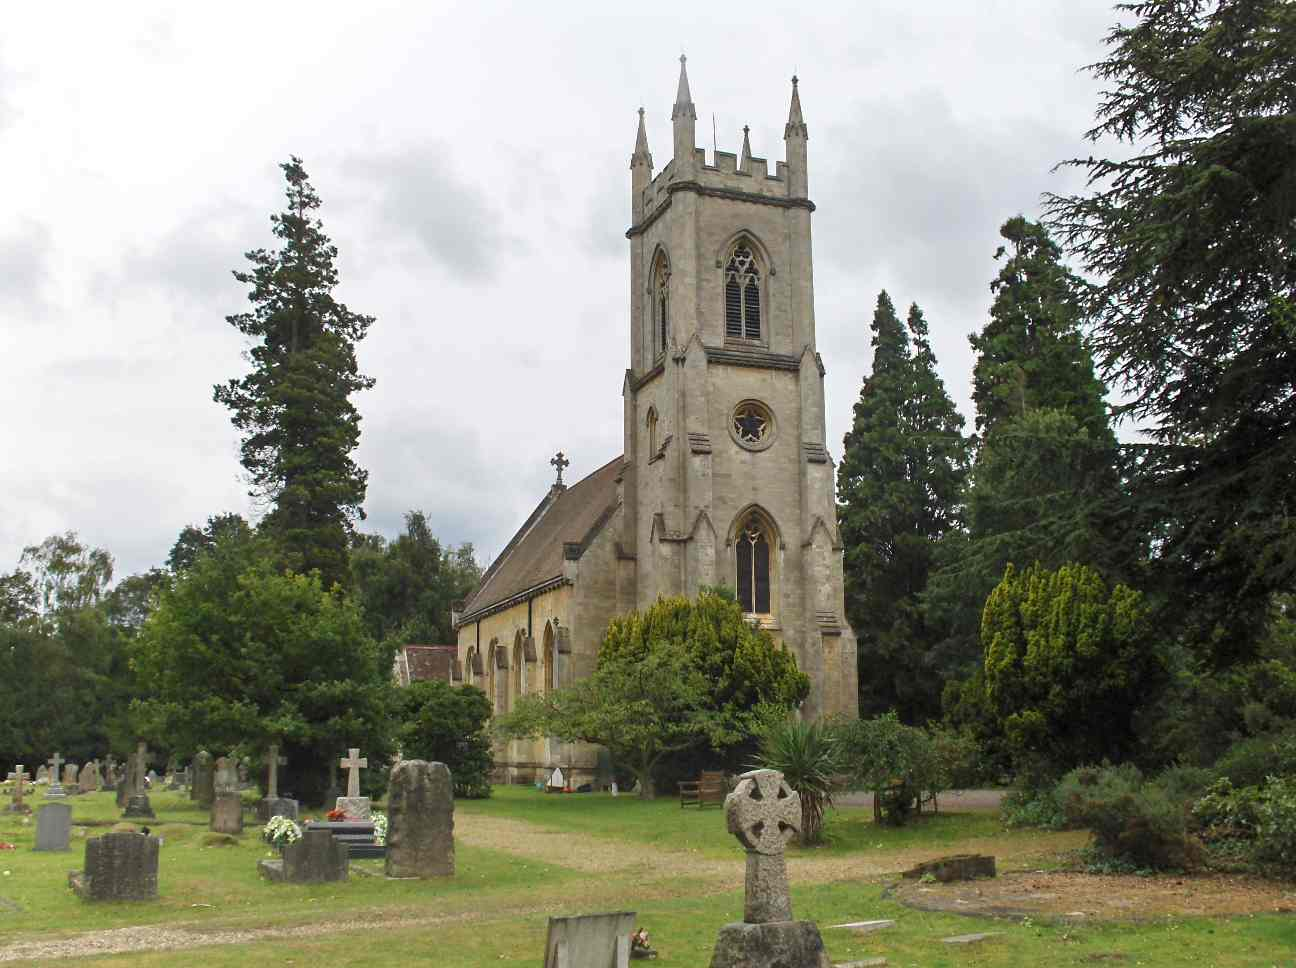 St. Catherine's Church, Bearwood; in the foreground is a memorial to Arthur Walter, died 1910